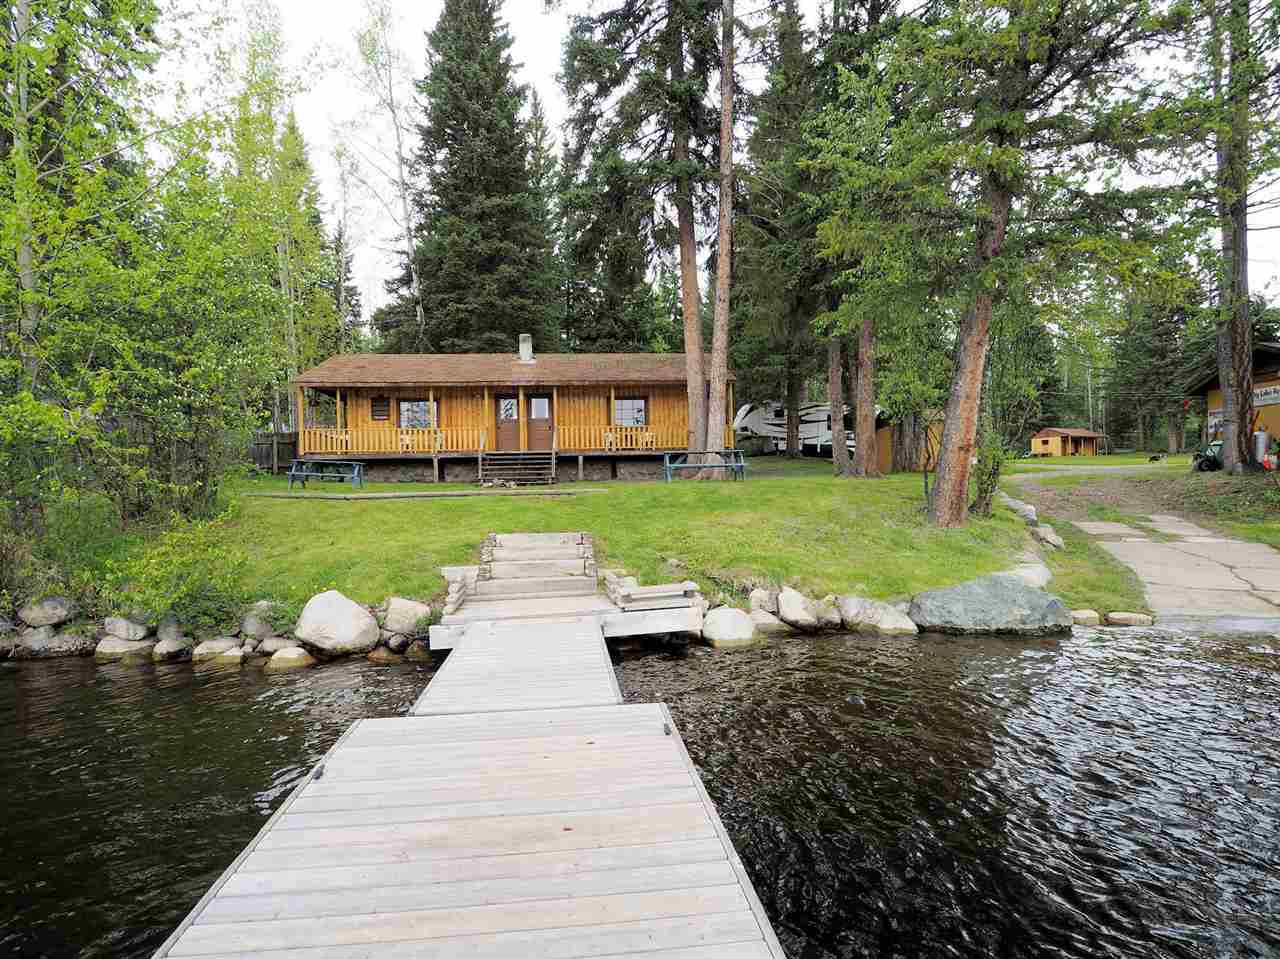 Main Photo: LOT 1 TIMOTHY LAKE Road: Lac la Hache House for sale (100 Mile House (Zone 10))  : MLS®# R2454260